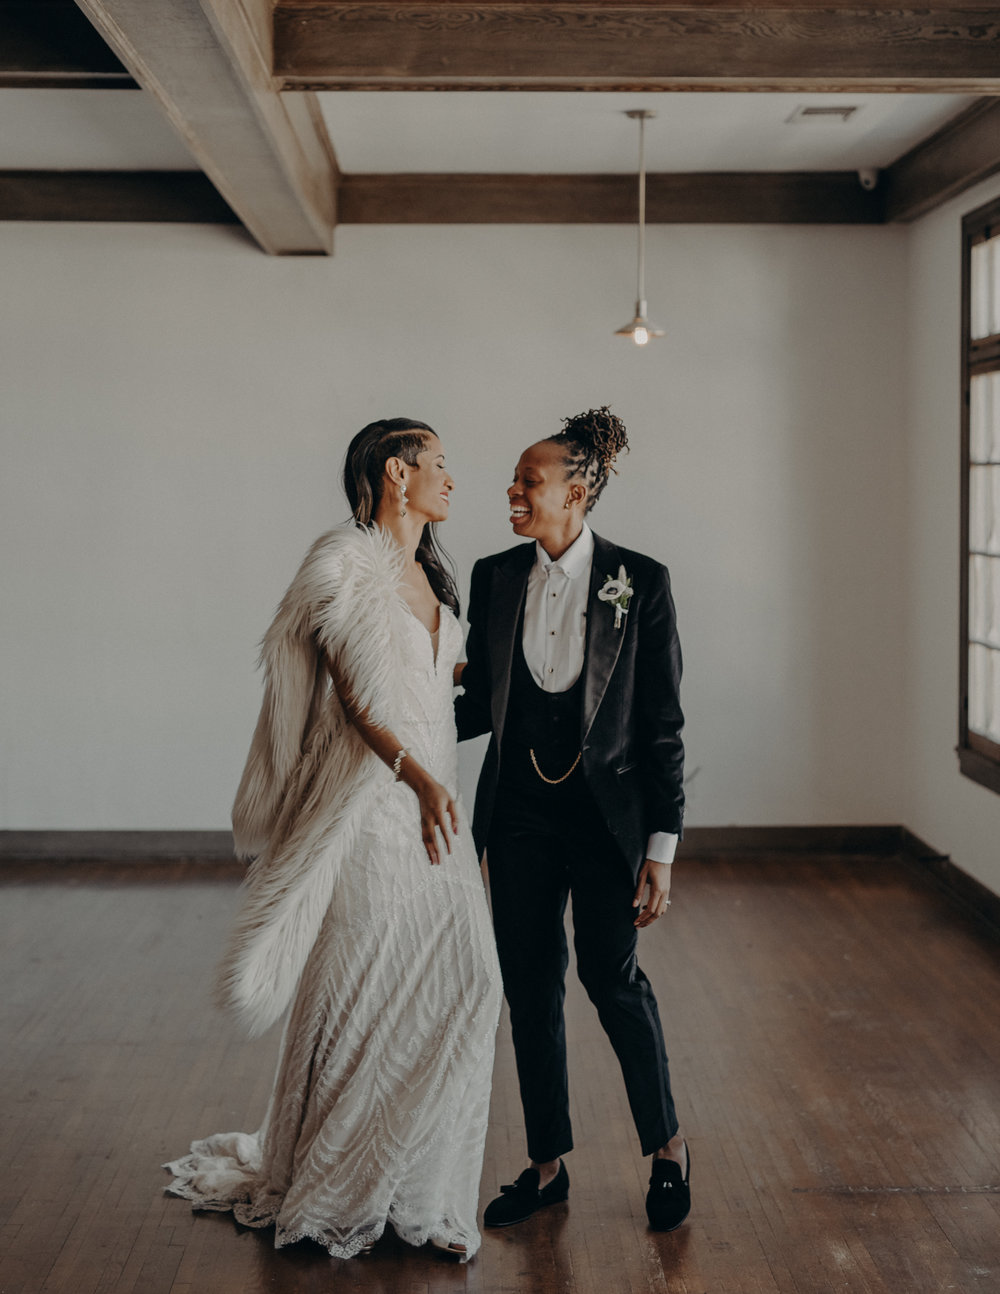 Wedding Photographer in Los Angeles - Ebell of Long Beach Wedding - LGBTQ weddings - lesbian wedding - IsaiahAndTaylor.com-036.jpg